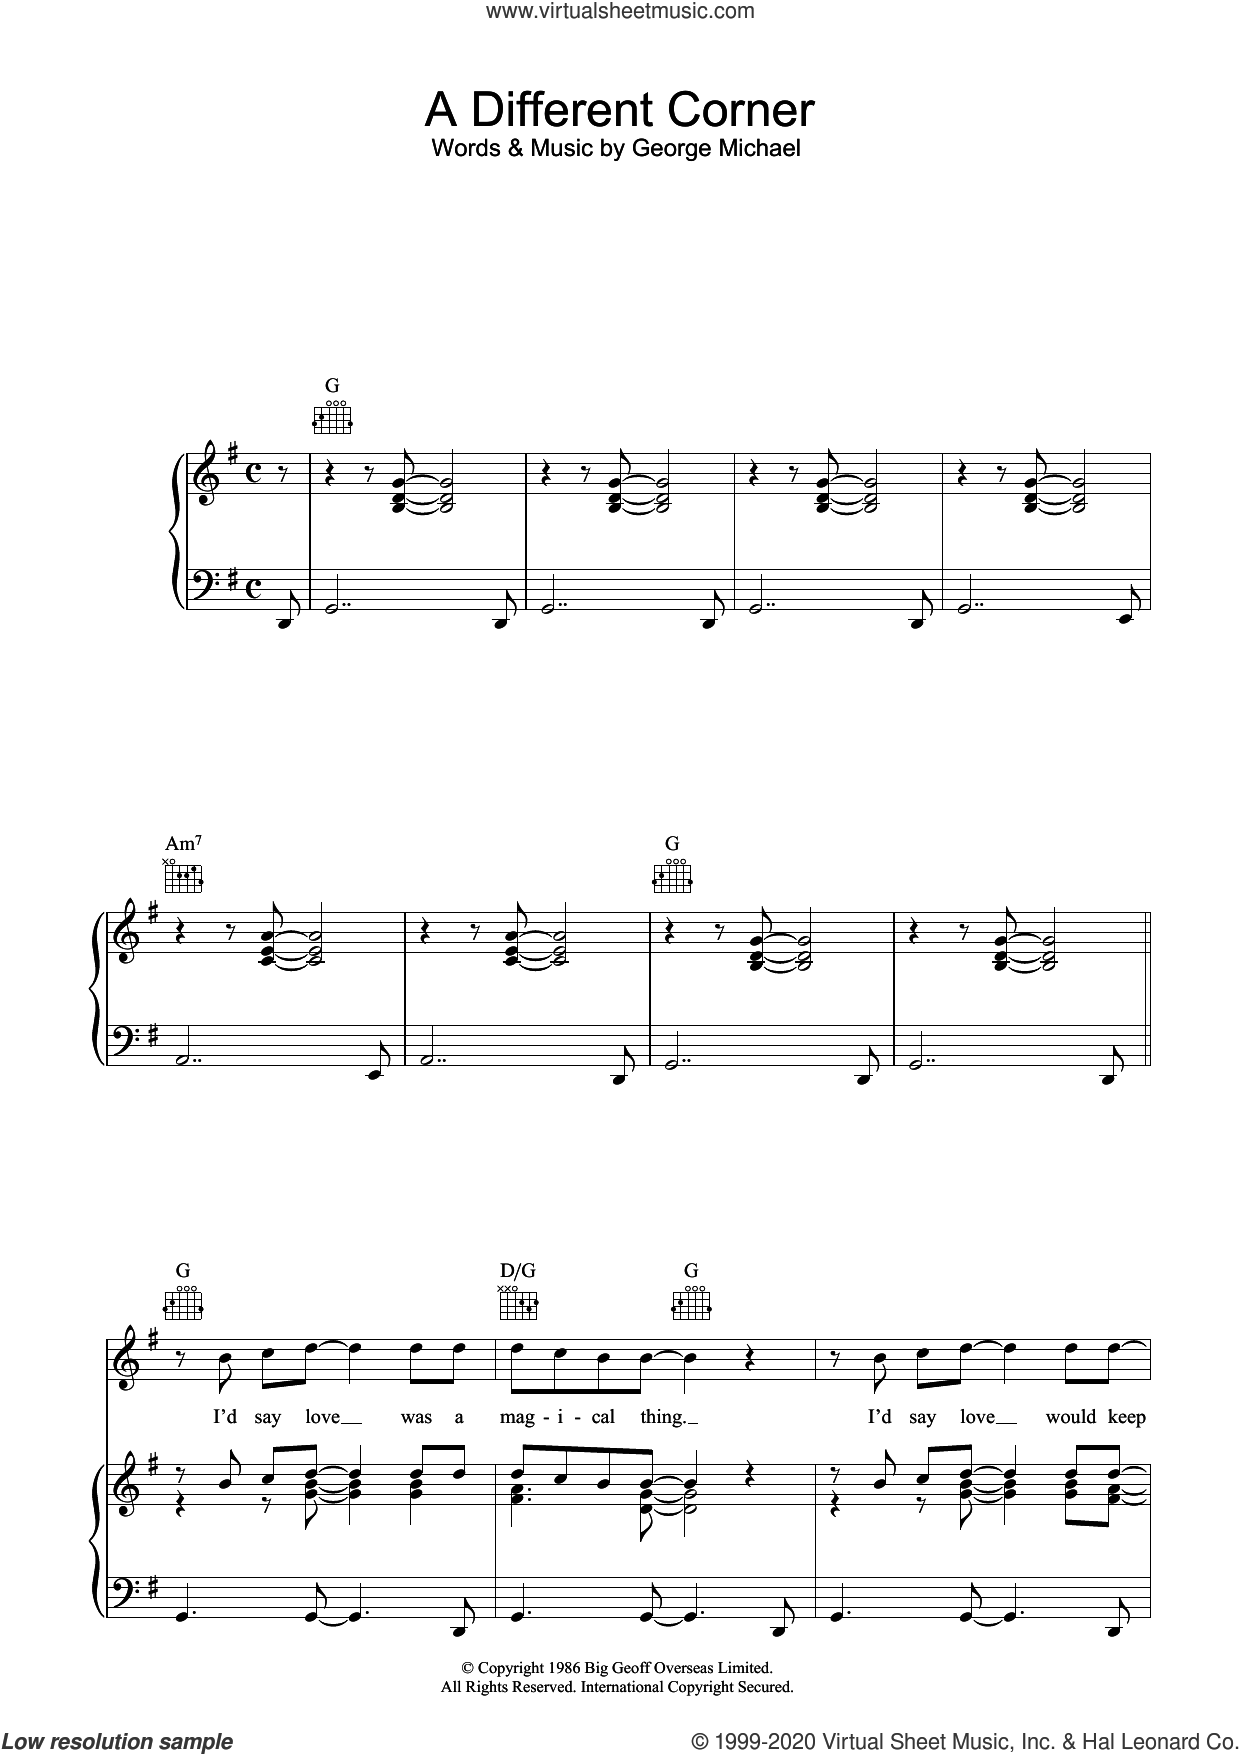 A Different Corner sheet music for voice, piano or guitar by George Michael, intermediate skill level